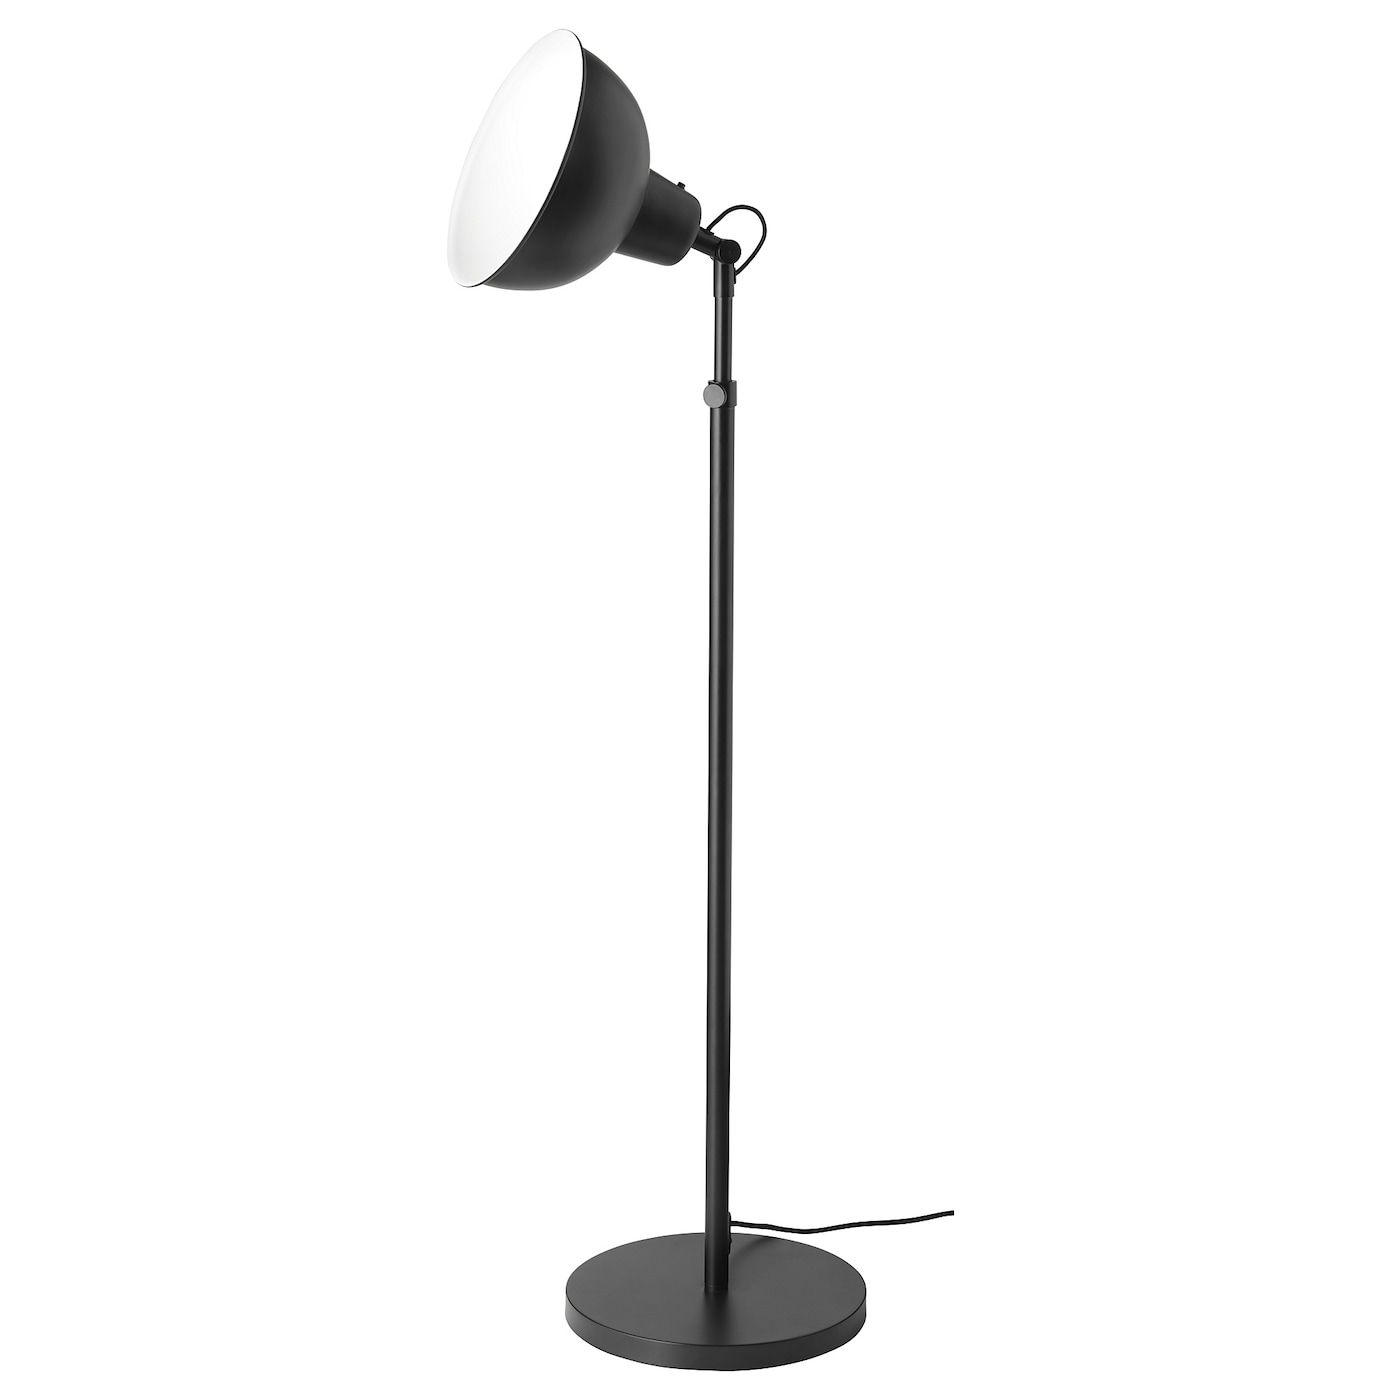 SKURUP Floor uplight with LED bulb, black IKEA in 2020